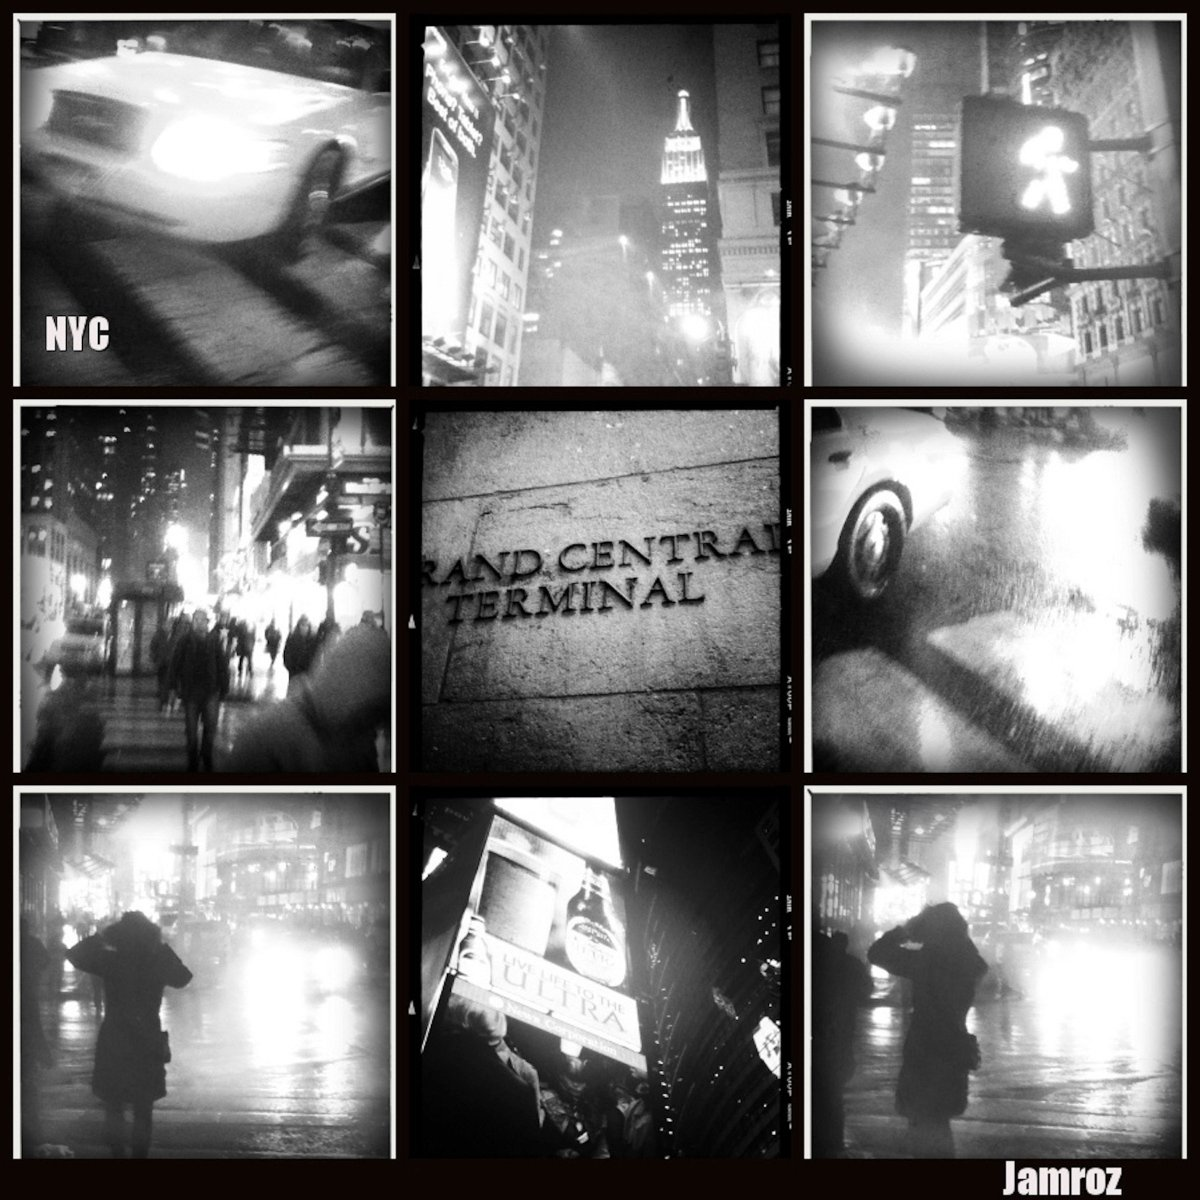 A #NYC Collage  #etsy shop: NYC in Black and White, New York, Midtown, Grand Central Canvas, Collage, Wall Art, Times Square  #Newyorkphotos #architecturecityscape #nyc #newyork #timessquare #grandcentral #blackand